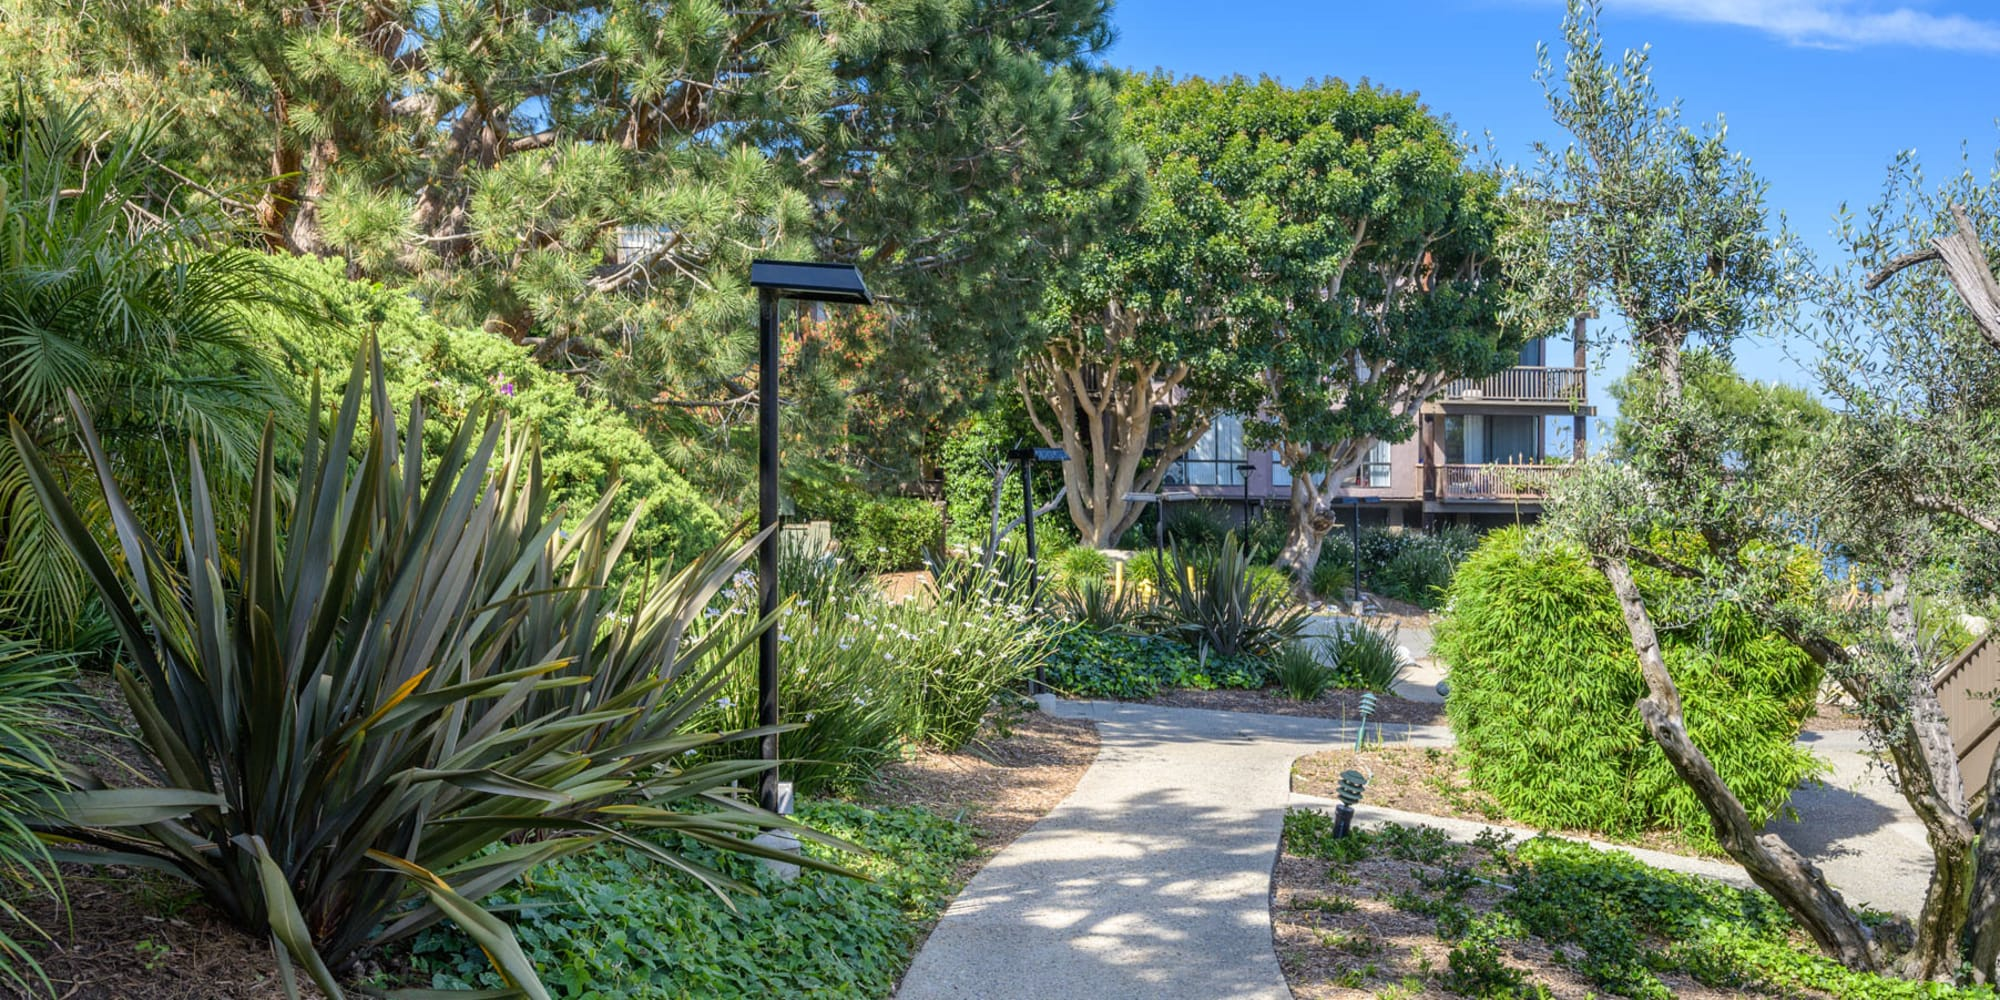 Lush and well-maintained flora throughout the community at Mariners Village in Marina del Rey, California